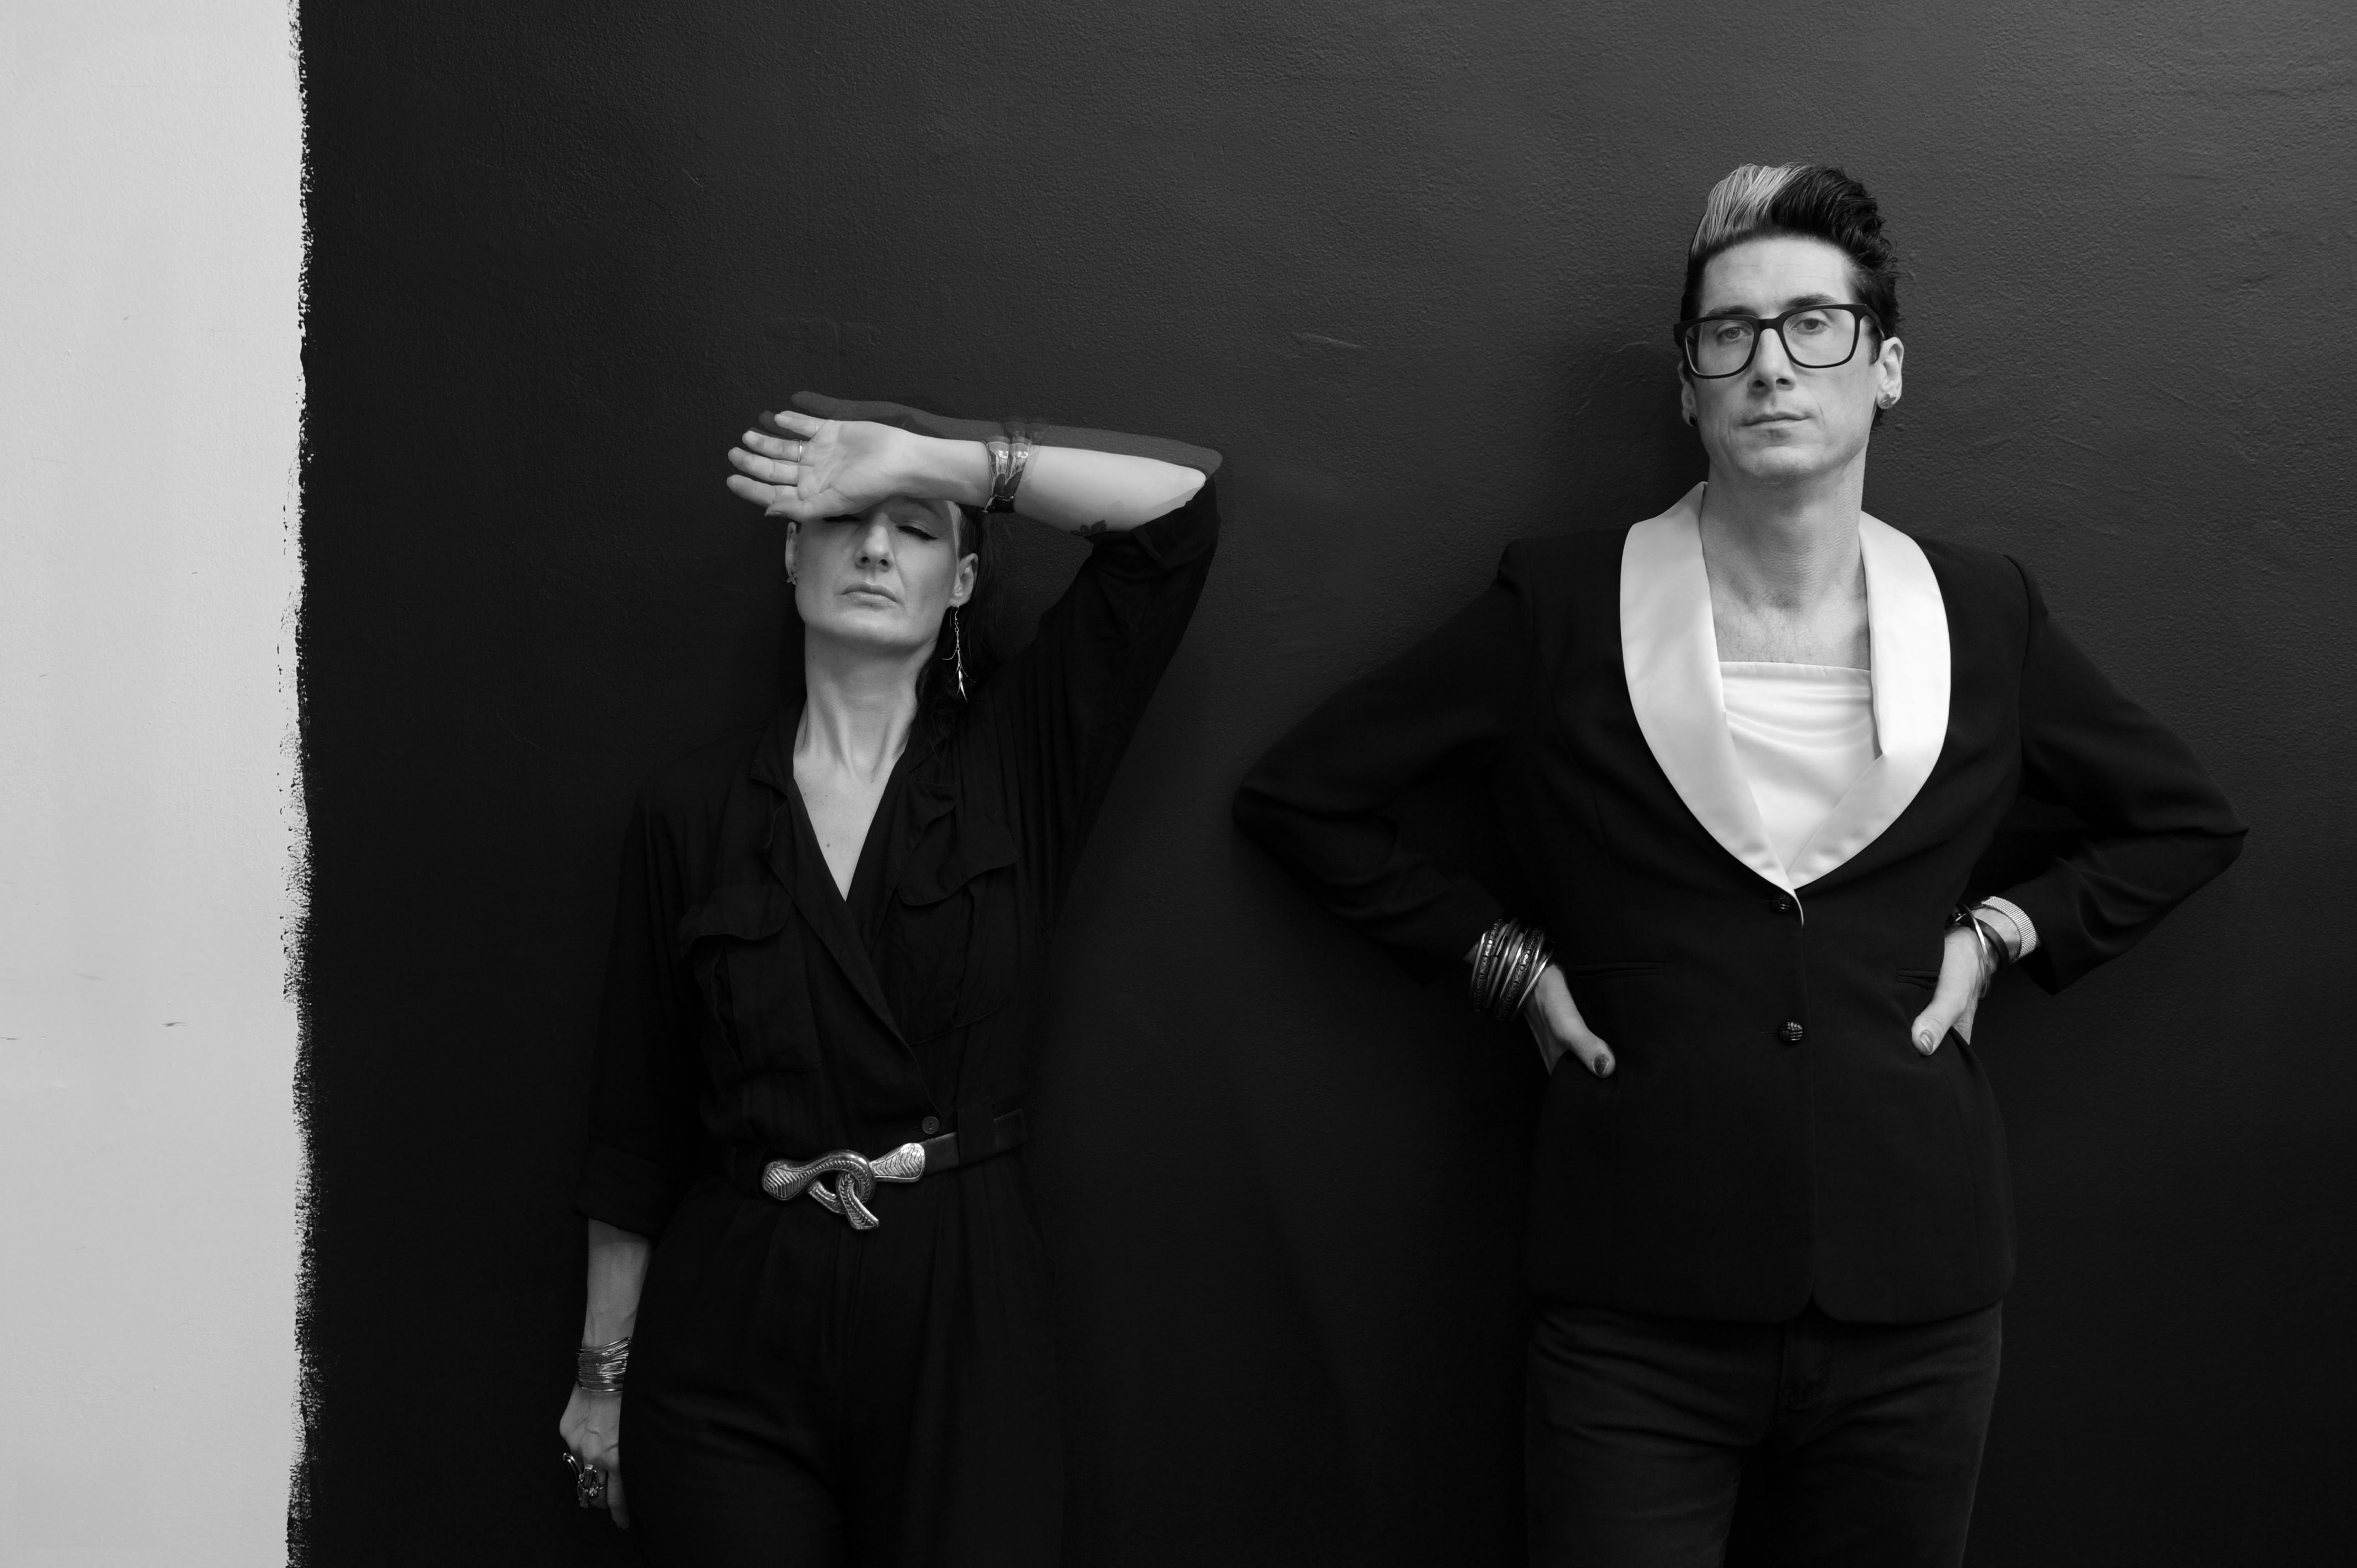 """Detroit artist duo ADULT. have shared a new music video for their single """"We Are a Mirror,"""" which was released earlier in the year via Mute."""